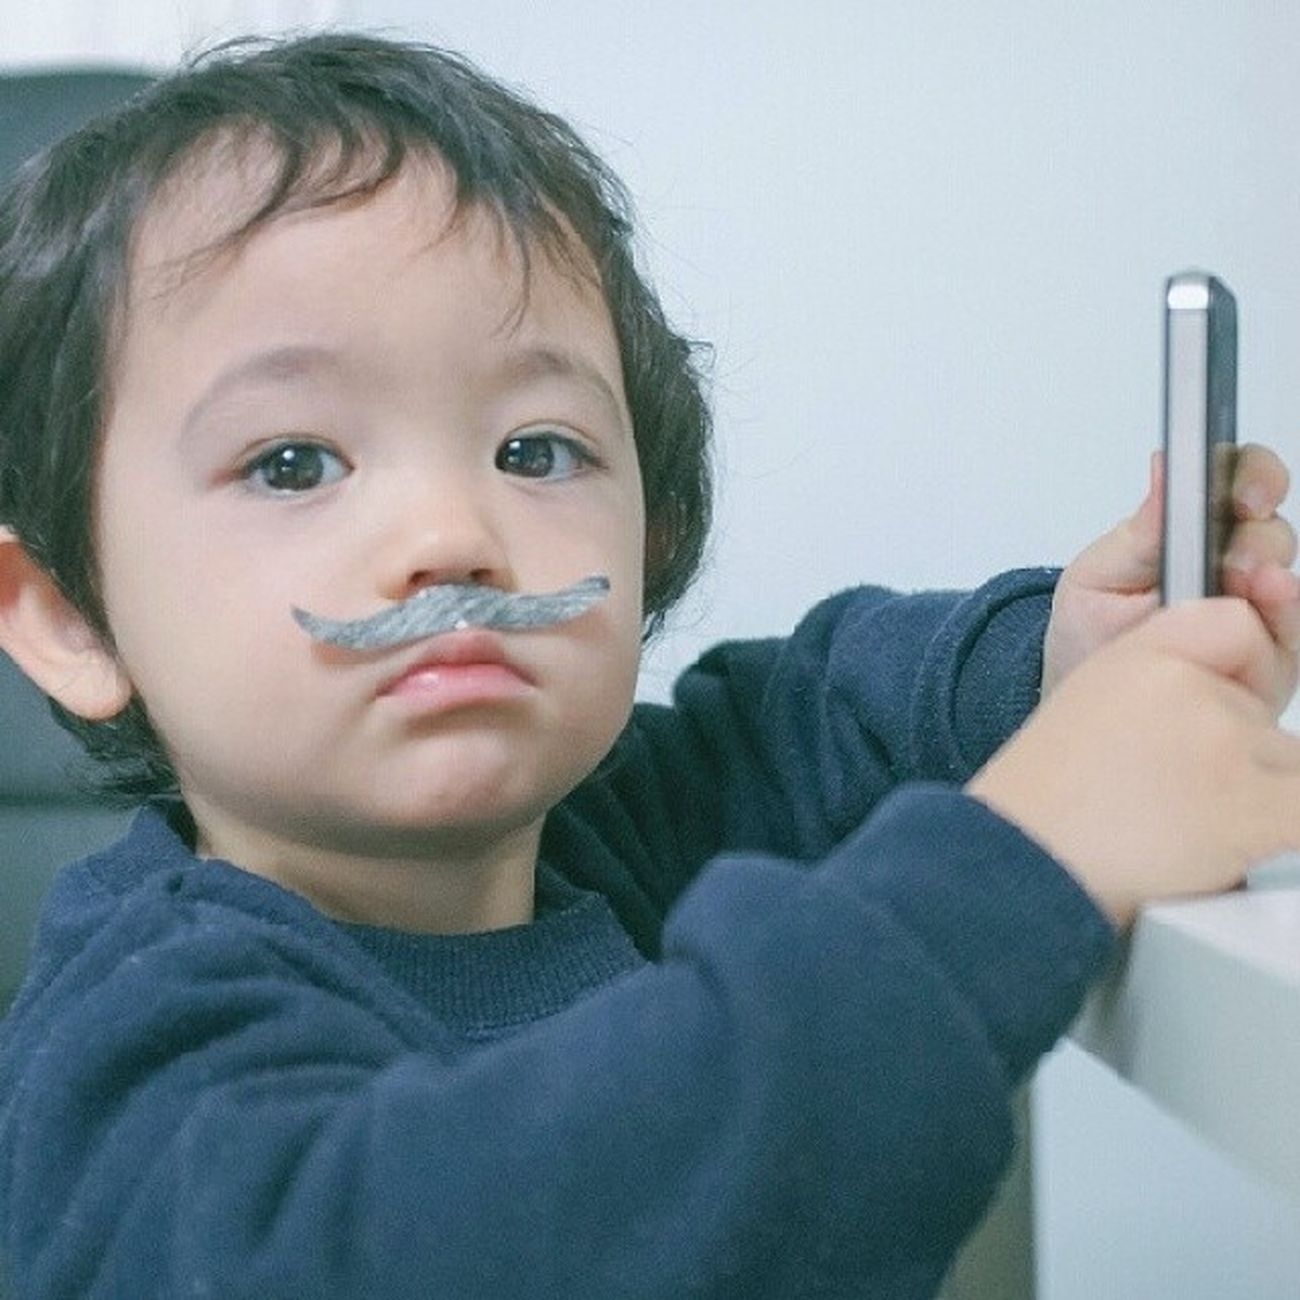 Dek Aldi sebelum photo session (Aldi before photo session) Cute kid and his Gadget III .. This is my mission for Seraveecotd Cotdindo Cotd Contest by @seravee.id x @cotd.indo . . Mau menangin iPhone 5s Gold ga guys?? Ayo check @cotd.indo sama @seravee.id buat join Seraveecotd contest ???